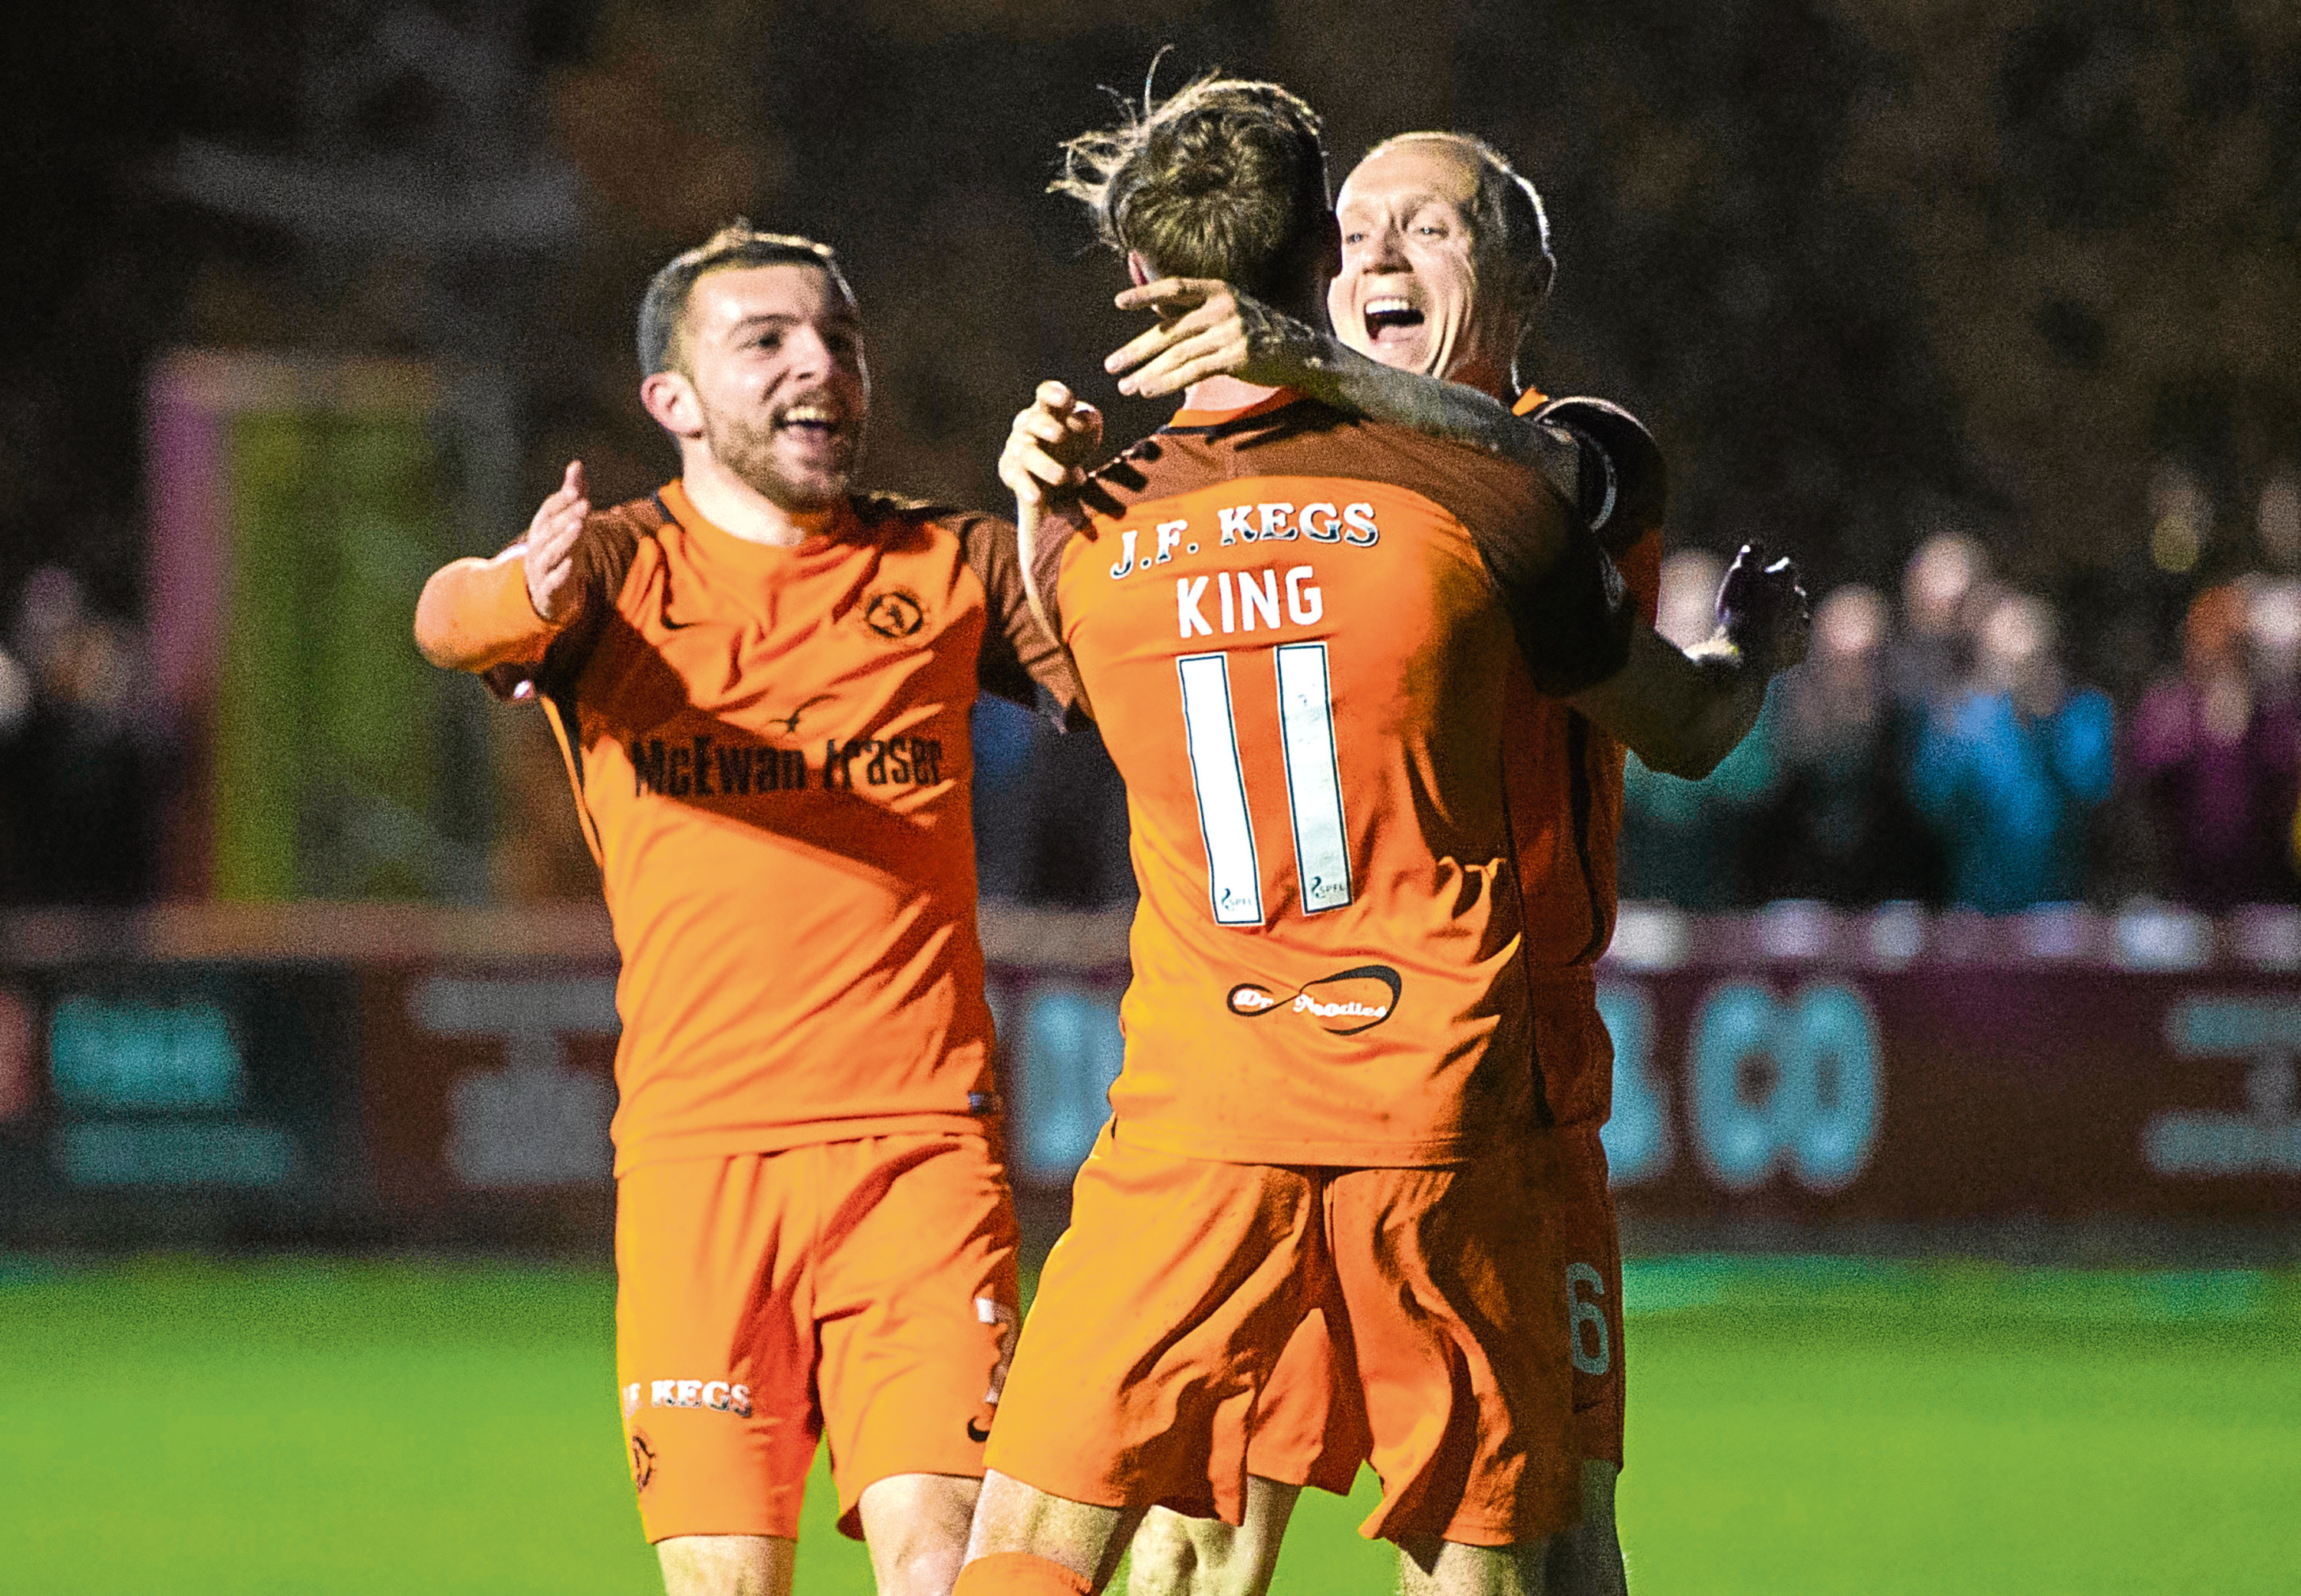 Paul McMullan and Willo Flood congratulate scorer Billy King's second goal for United at Brechin on Tuesday.